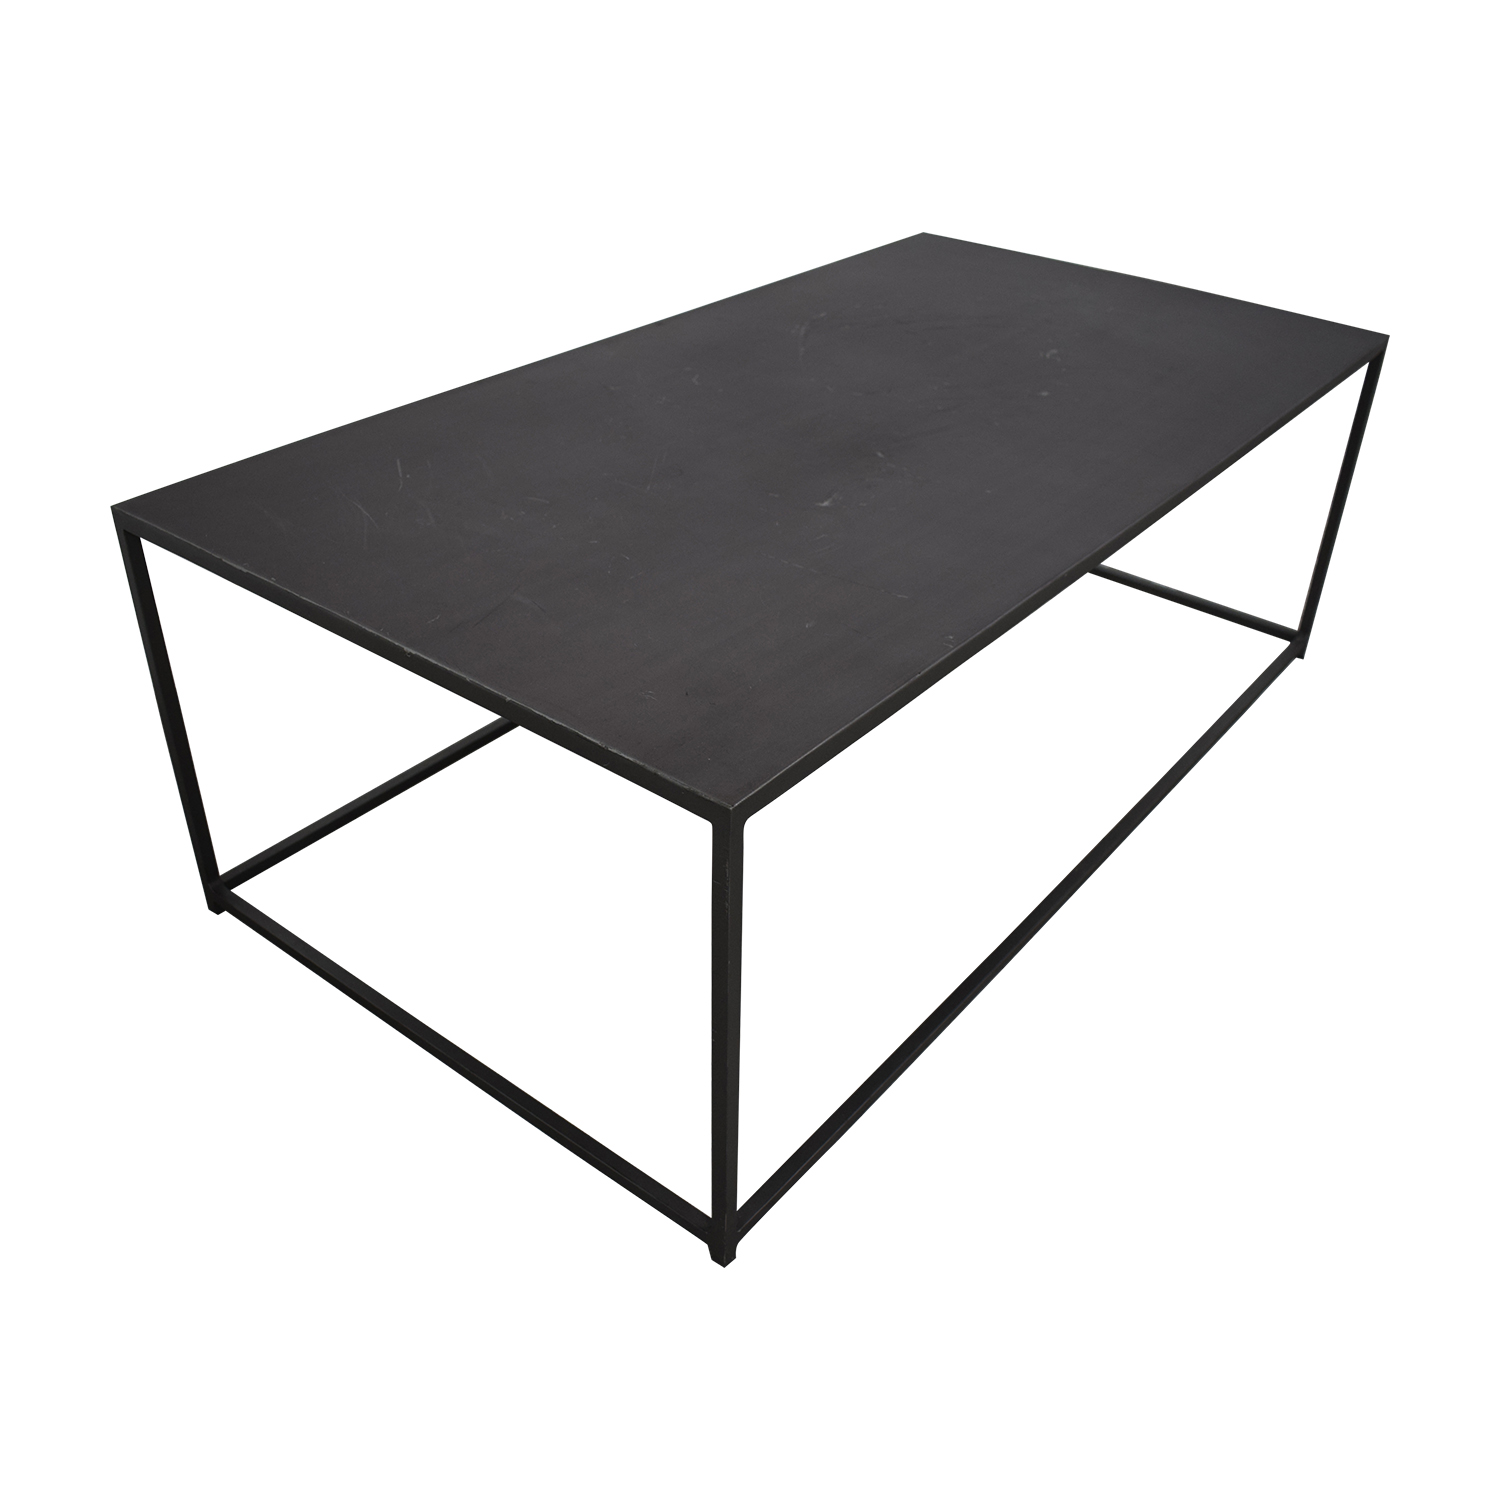 CB2 CB2 Mill Coffee Table price